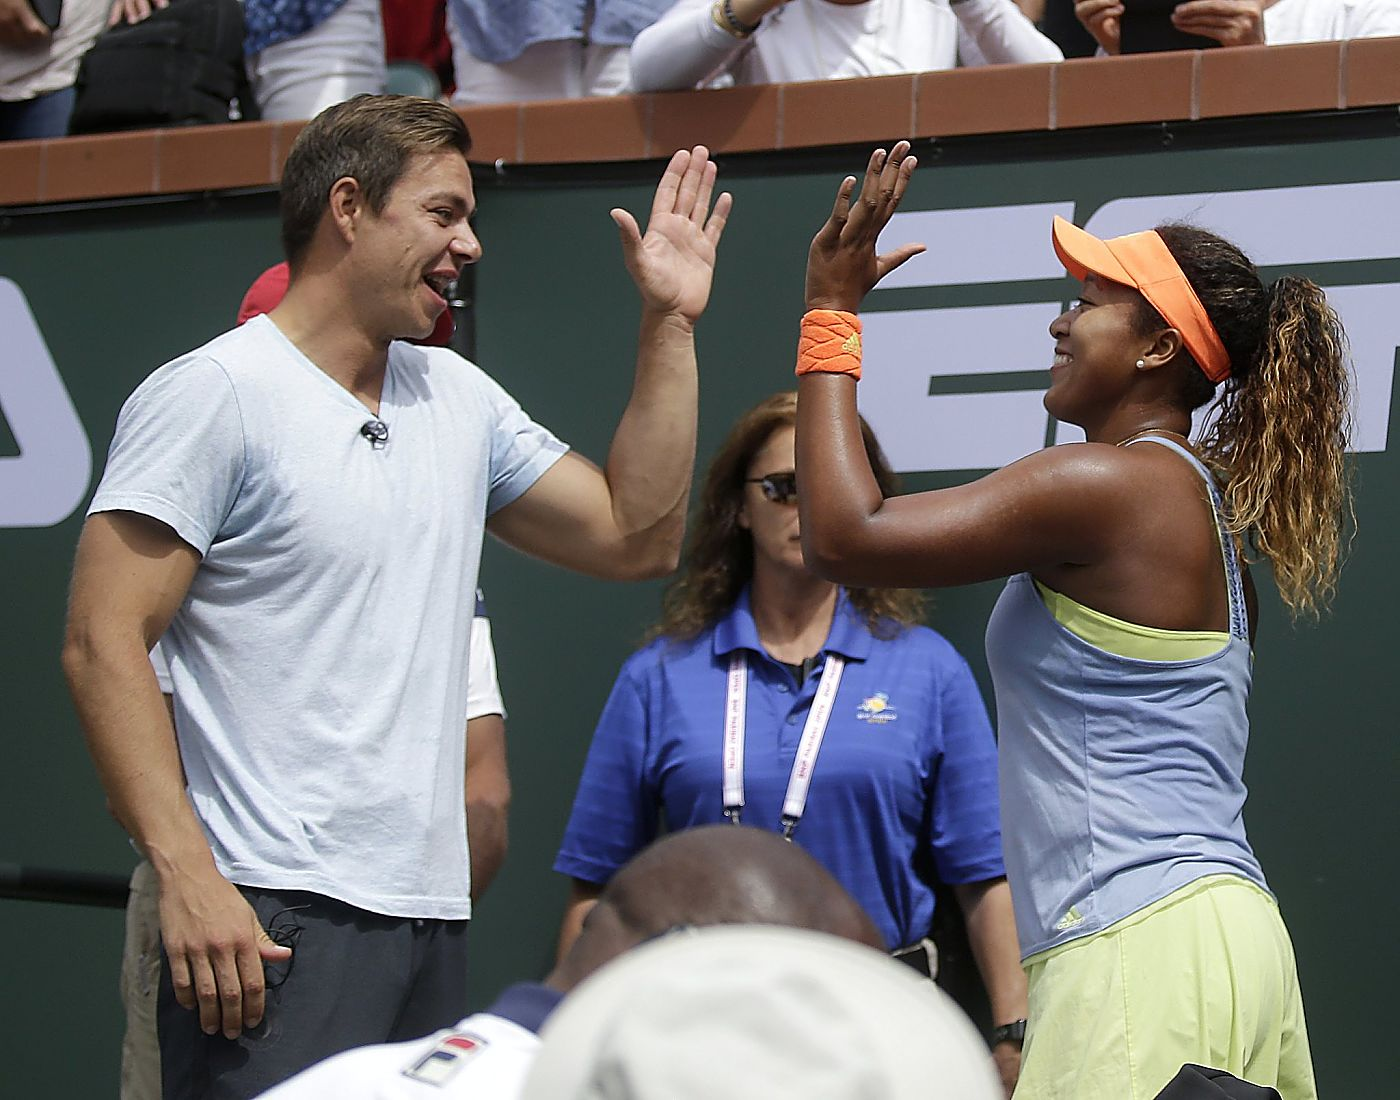 Naomi Osaka et son ancien coach Sascha Bajin. Photo: Tennis.life